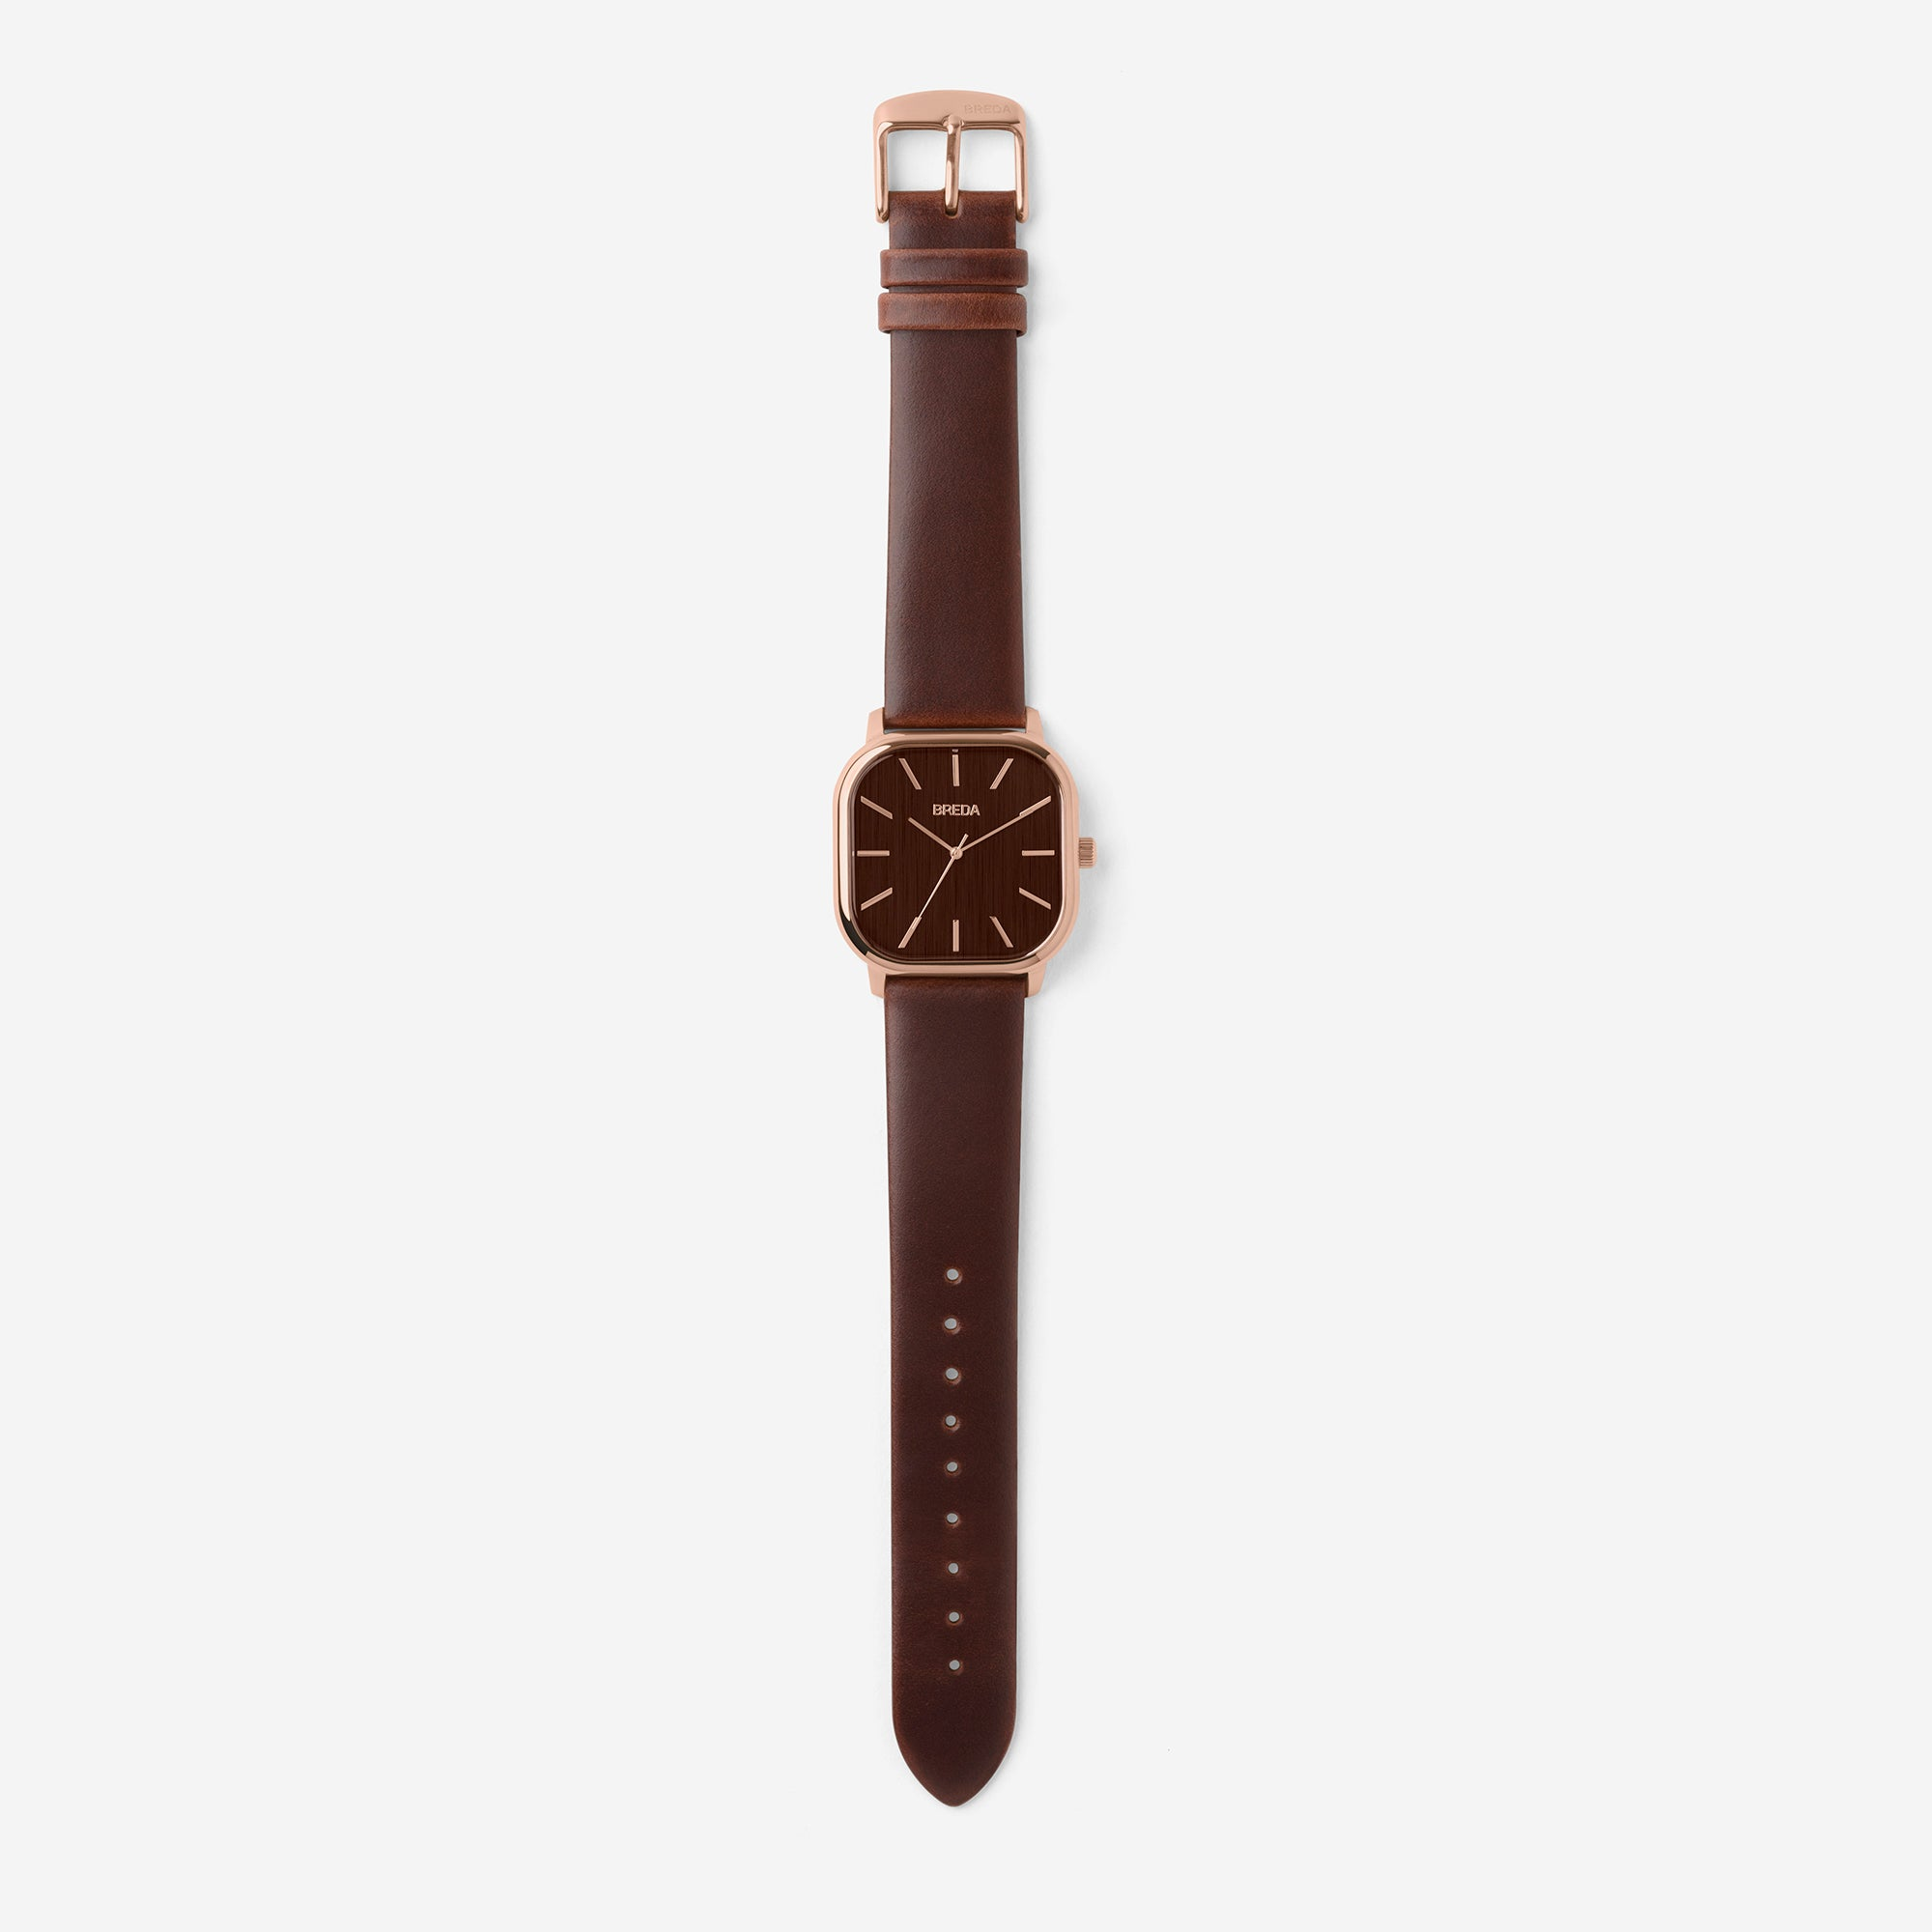 //cdn.shopify.com/s/files/1/0879/6650/products/breda-visser-1728f-rose-gold-brown-leather-watch-long_93c4042a-0ebe-4d55-baba-b71380d15f13_1024x1024.jpg?v=1543254804